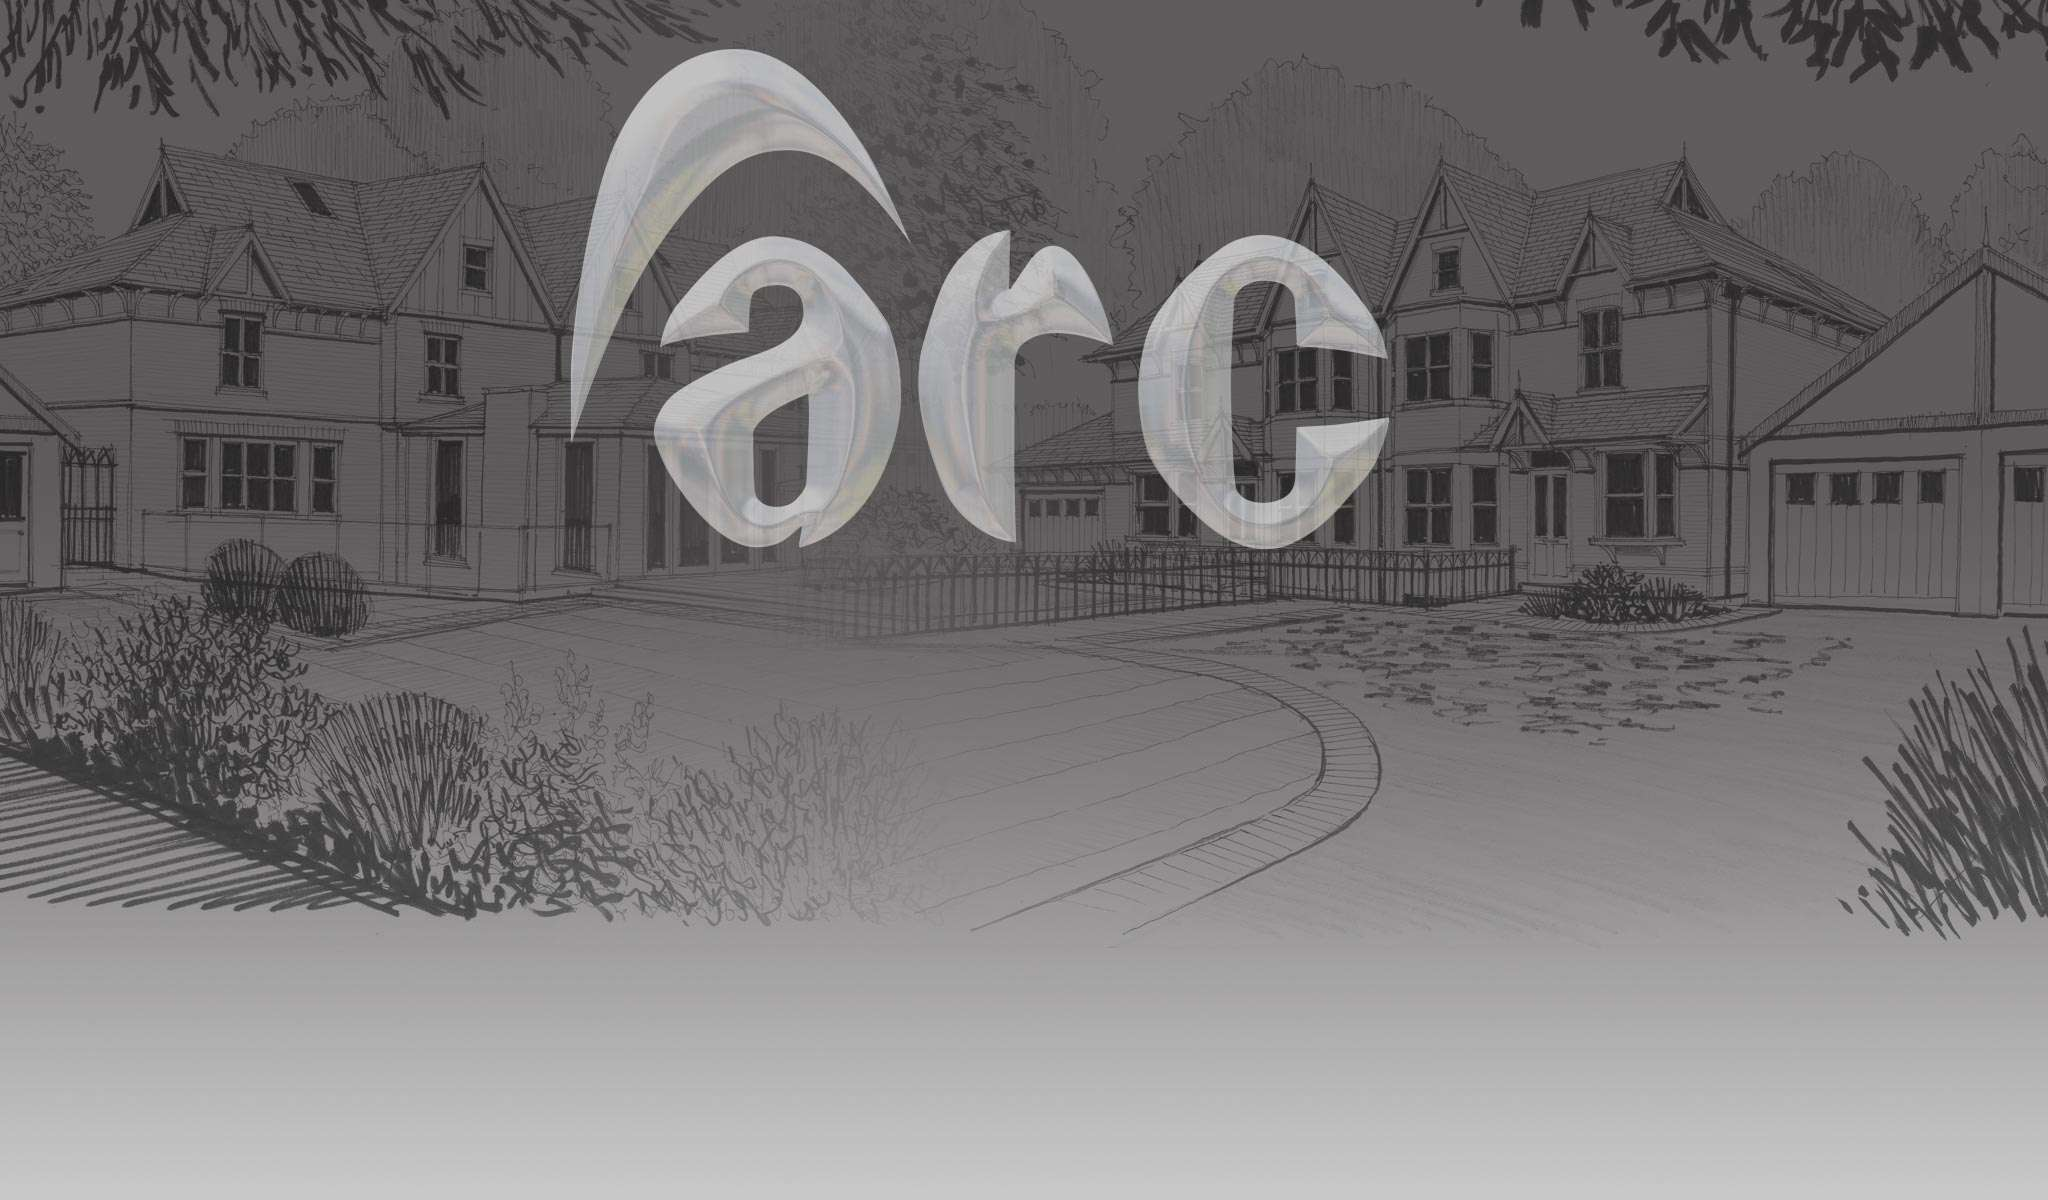 Arc Design Nominated For Award!